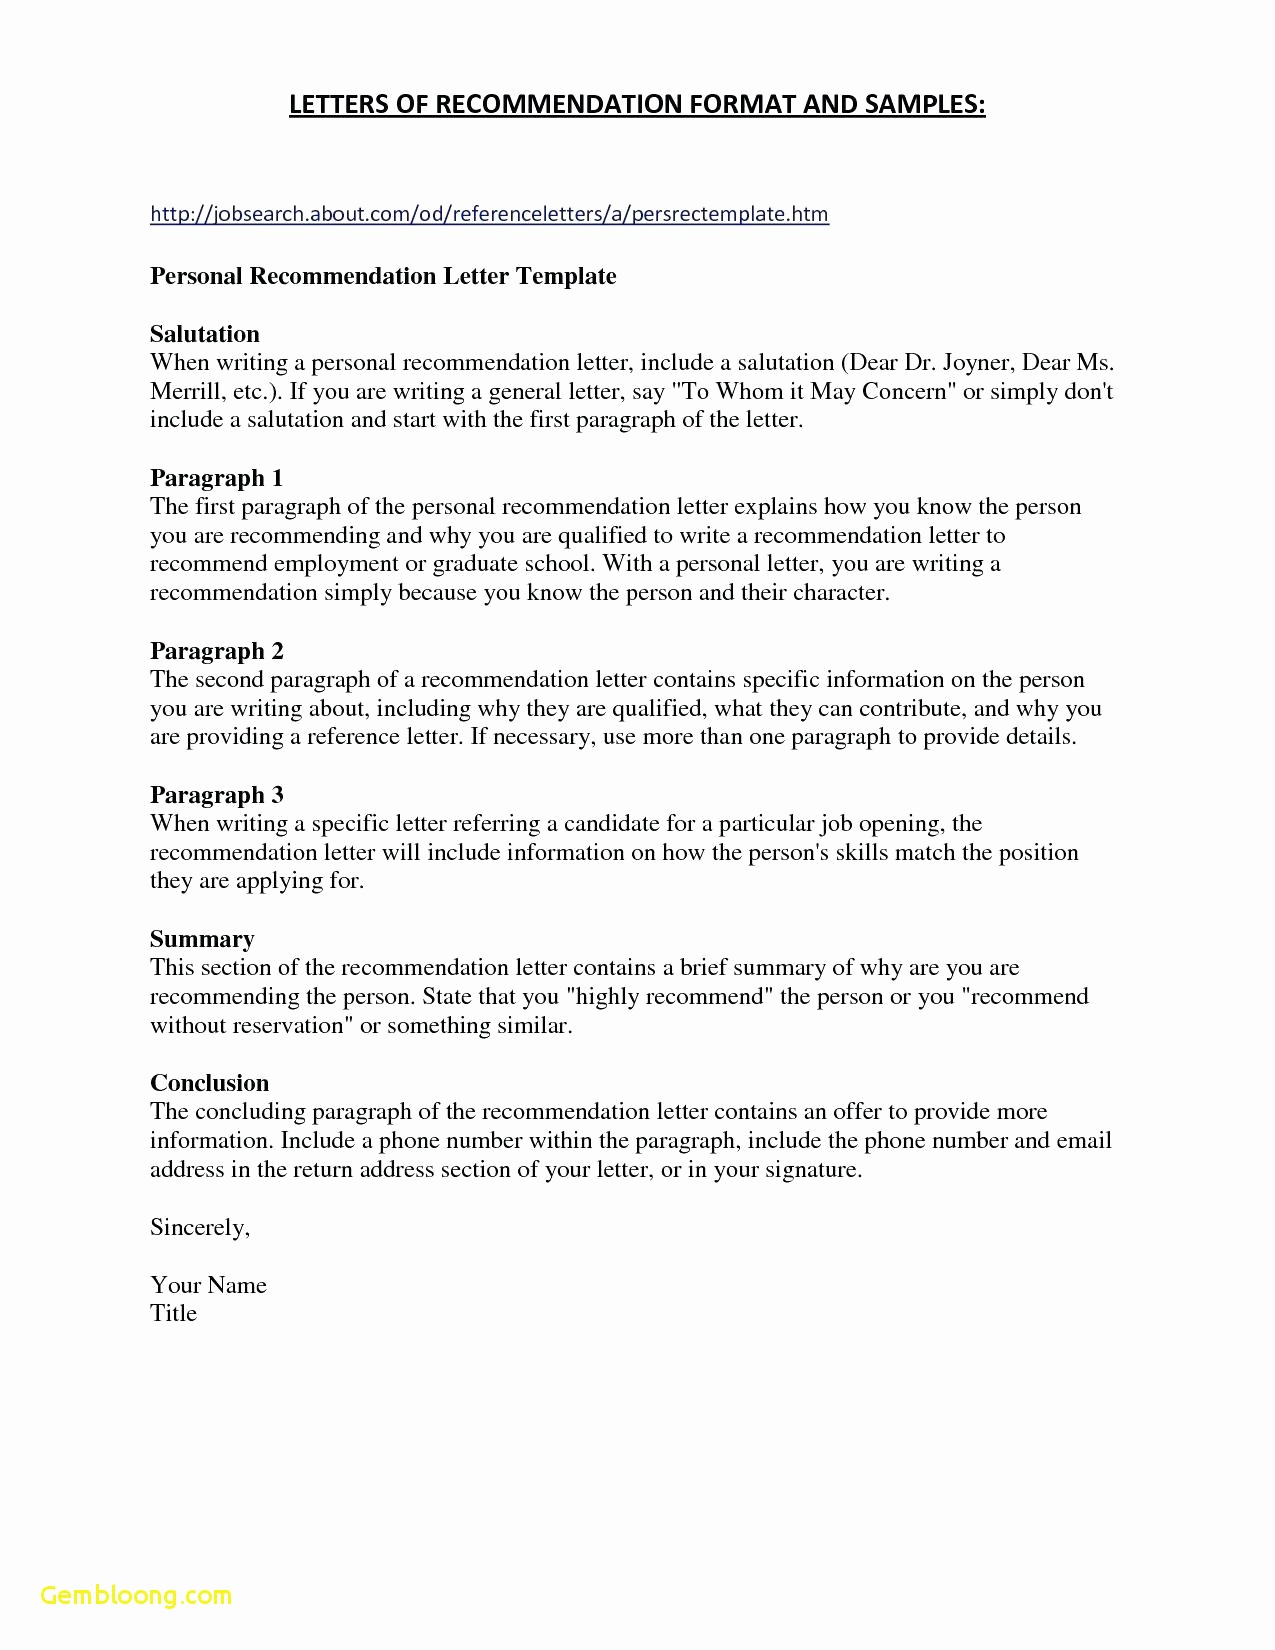 Personal Letter Template - Personal Re Mendation Letter for Employment Lovely References for